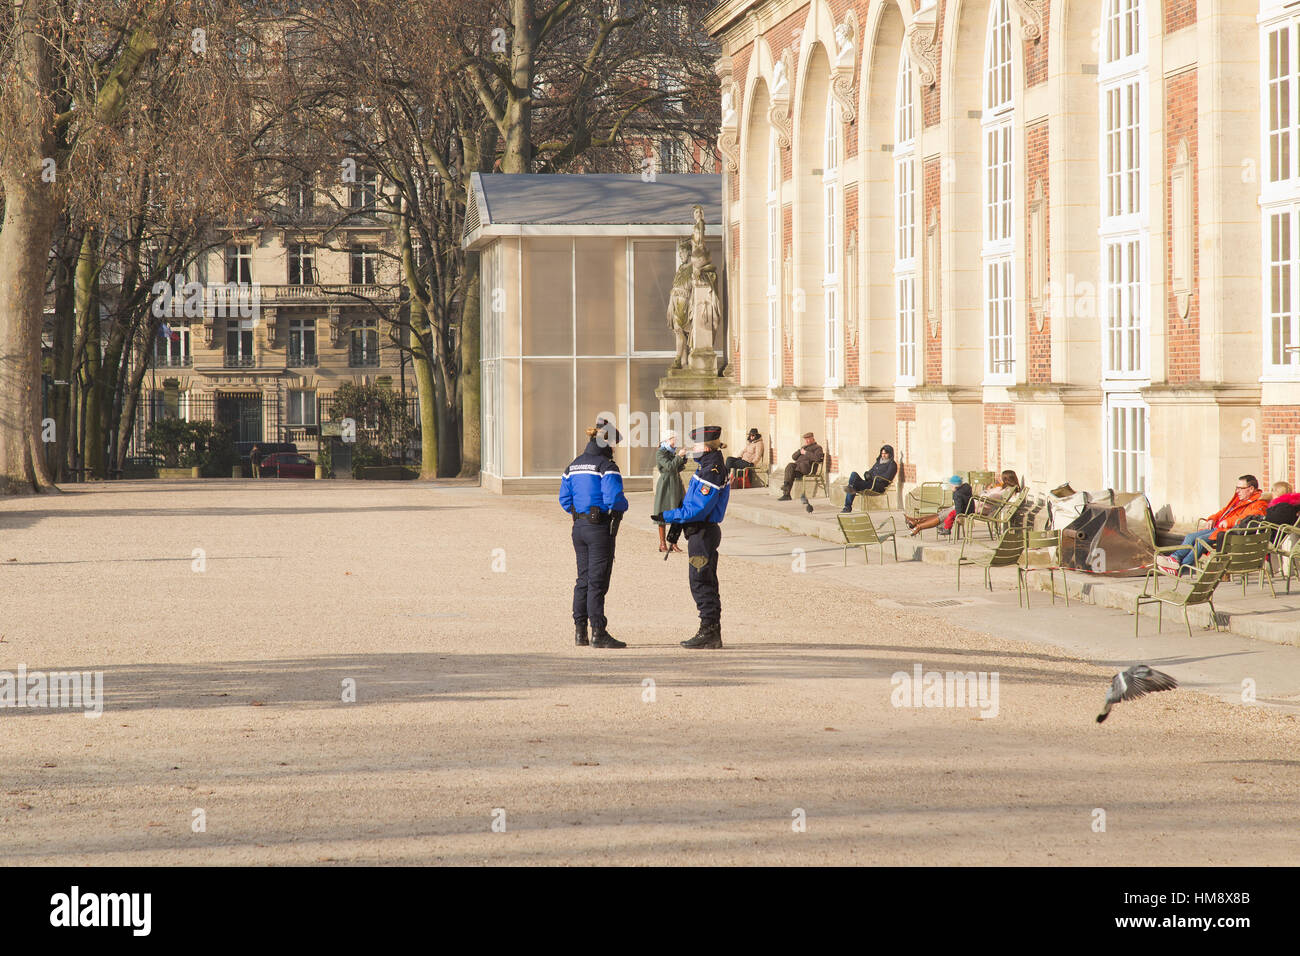 gendarmerie uniform photos gendarmerie uniform images alamy. Black Bedroom Furniture Sets. Home Design Ideas